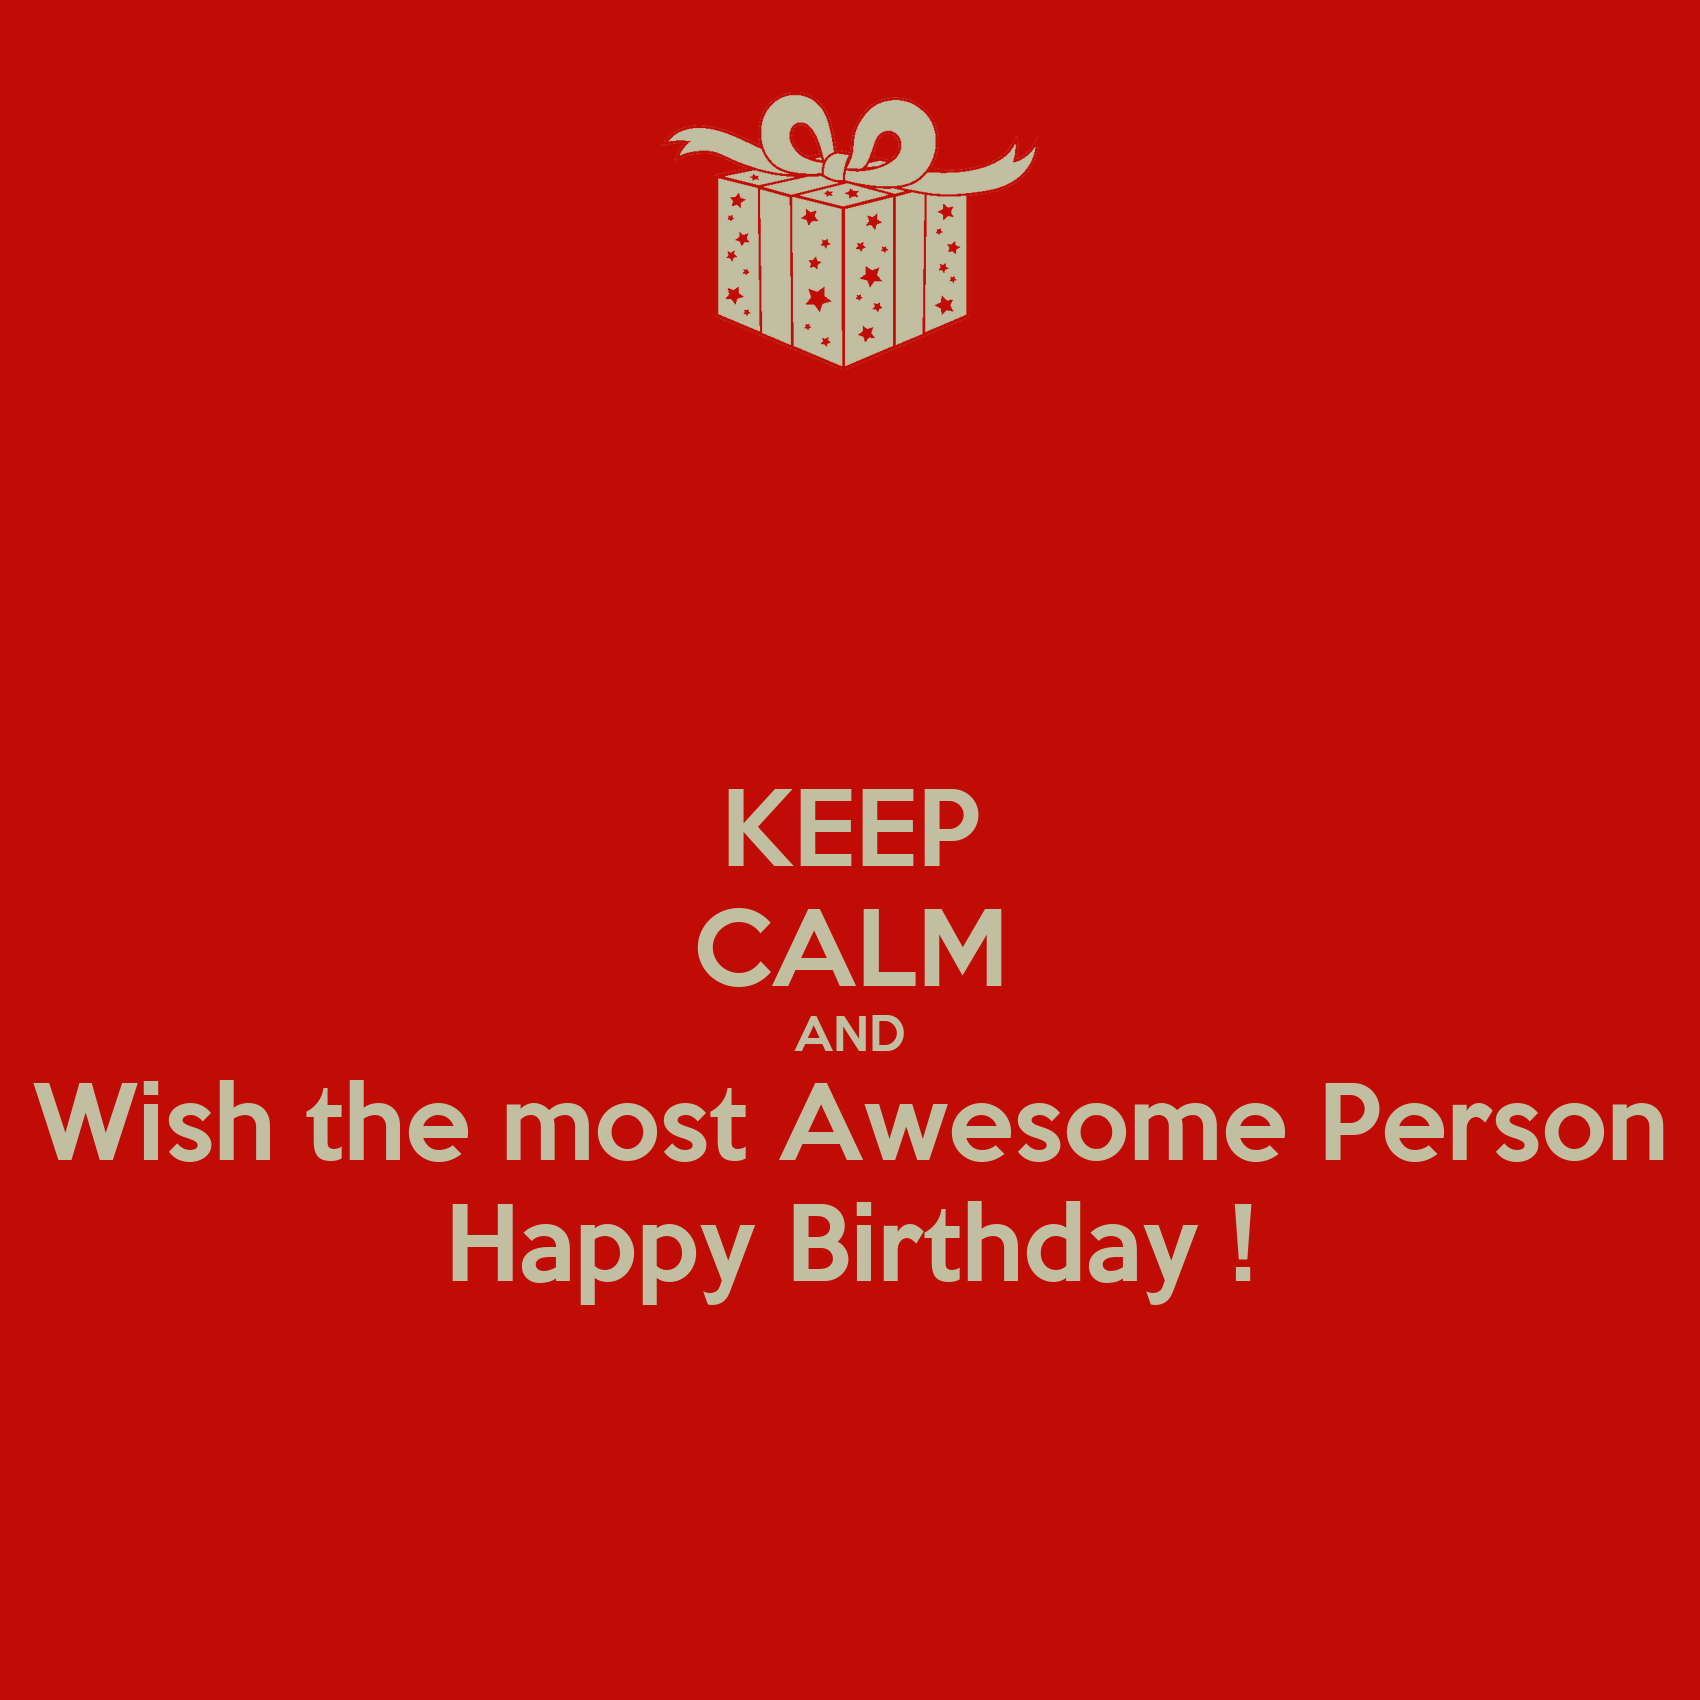 Keep Calm And Wish The Most Awesome Person Happy Birthday Happy Birthday Awesome Wishes